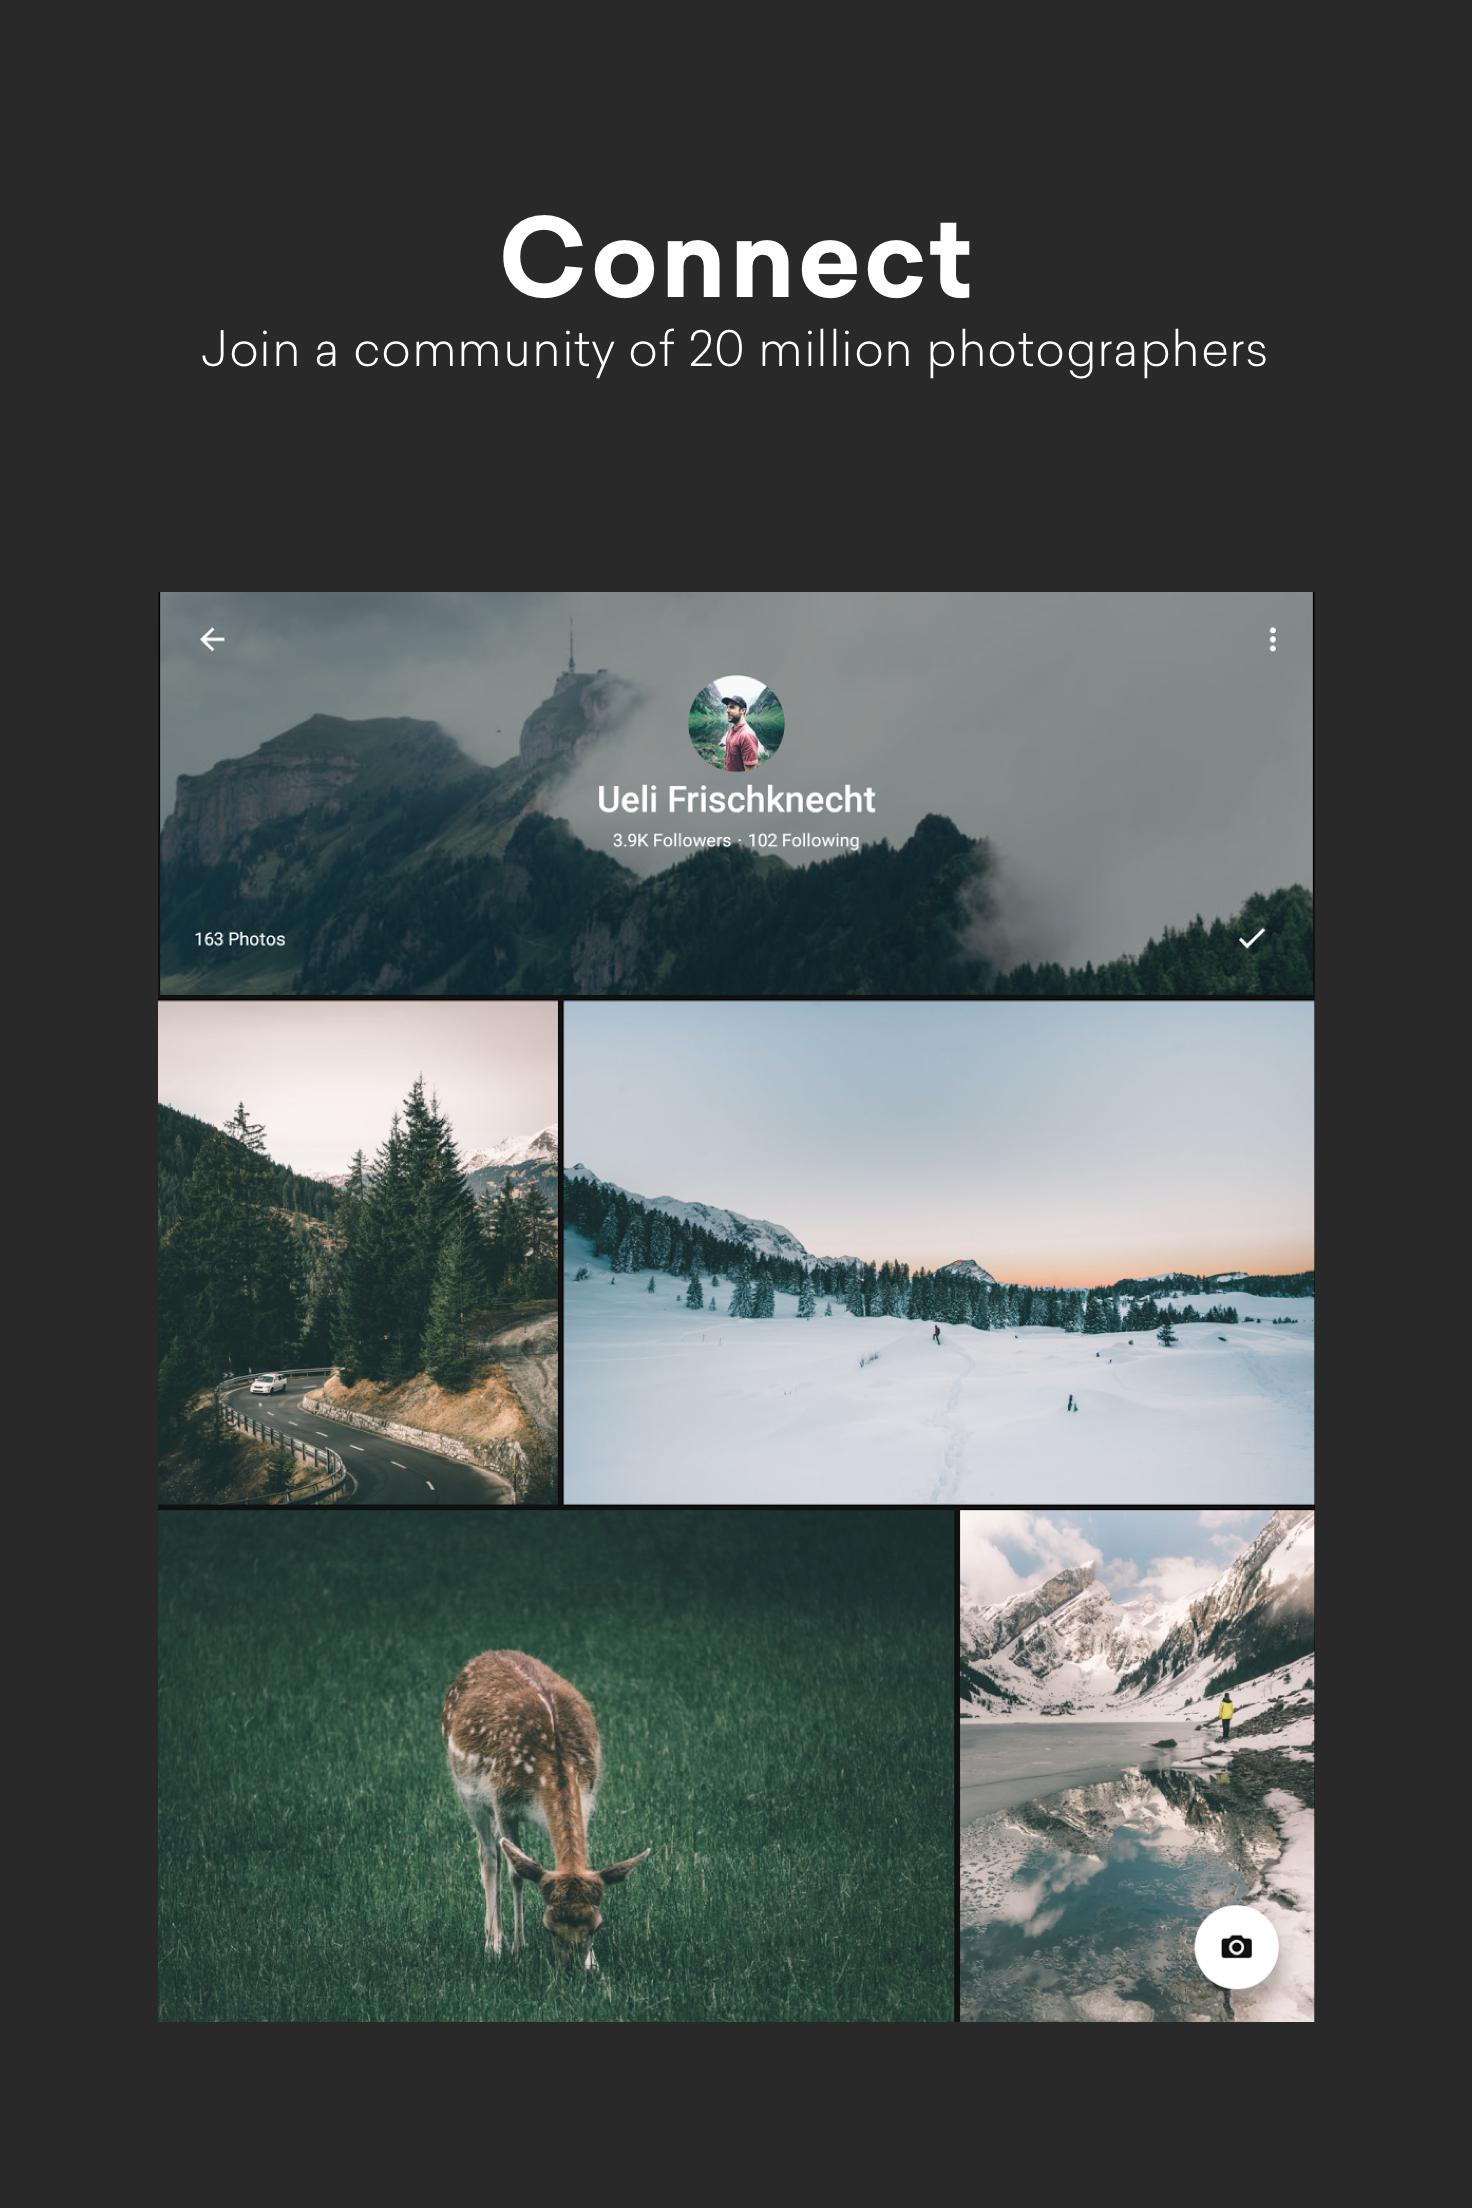 EyeEm Free Photo App For Sharing & Selling Images 8.1 Screenshot 16